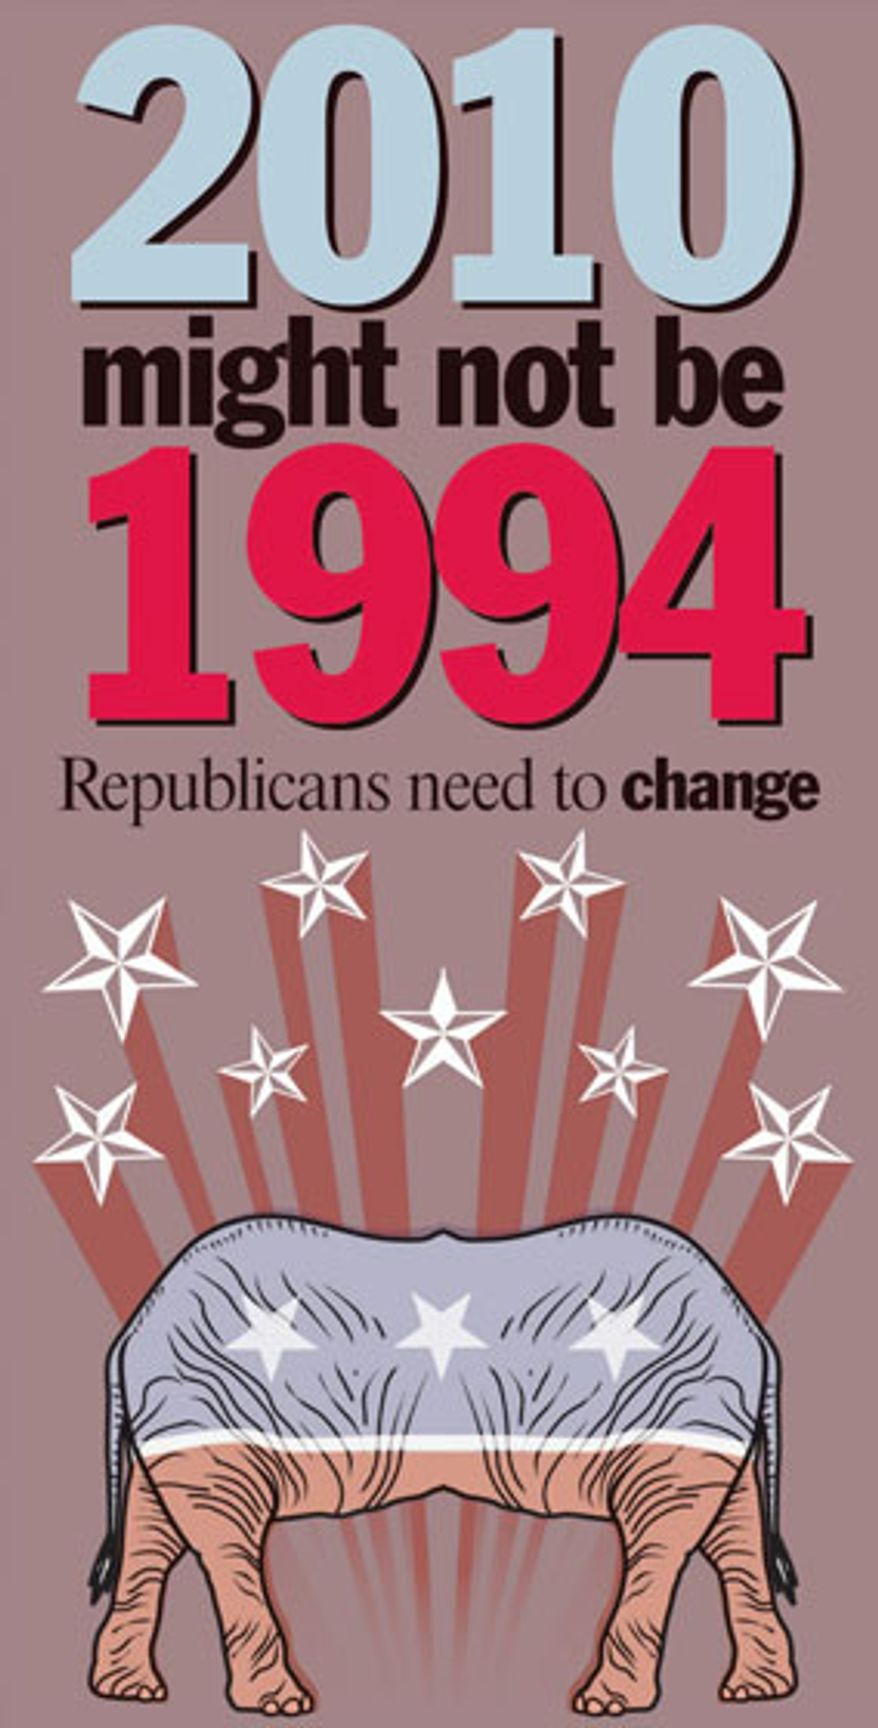 Illustration: Republican change needed by Linas Garsys for The Washington Times